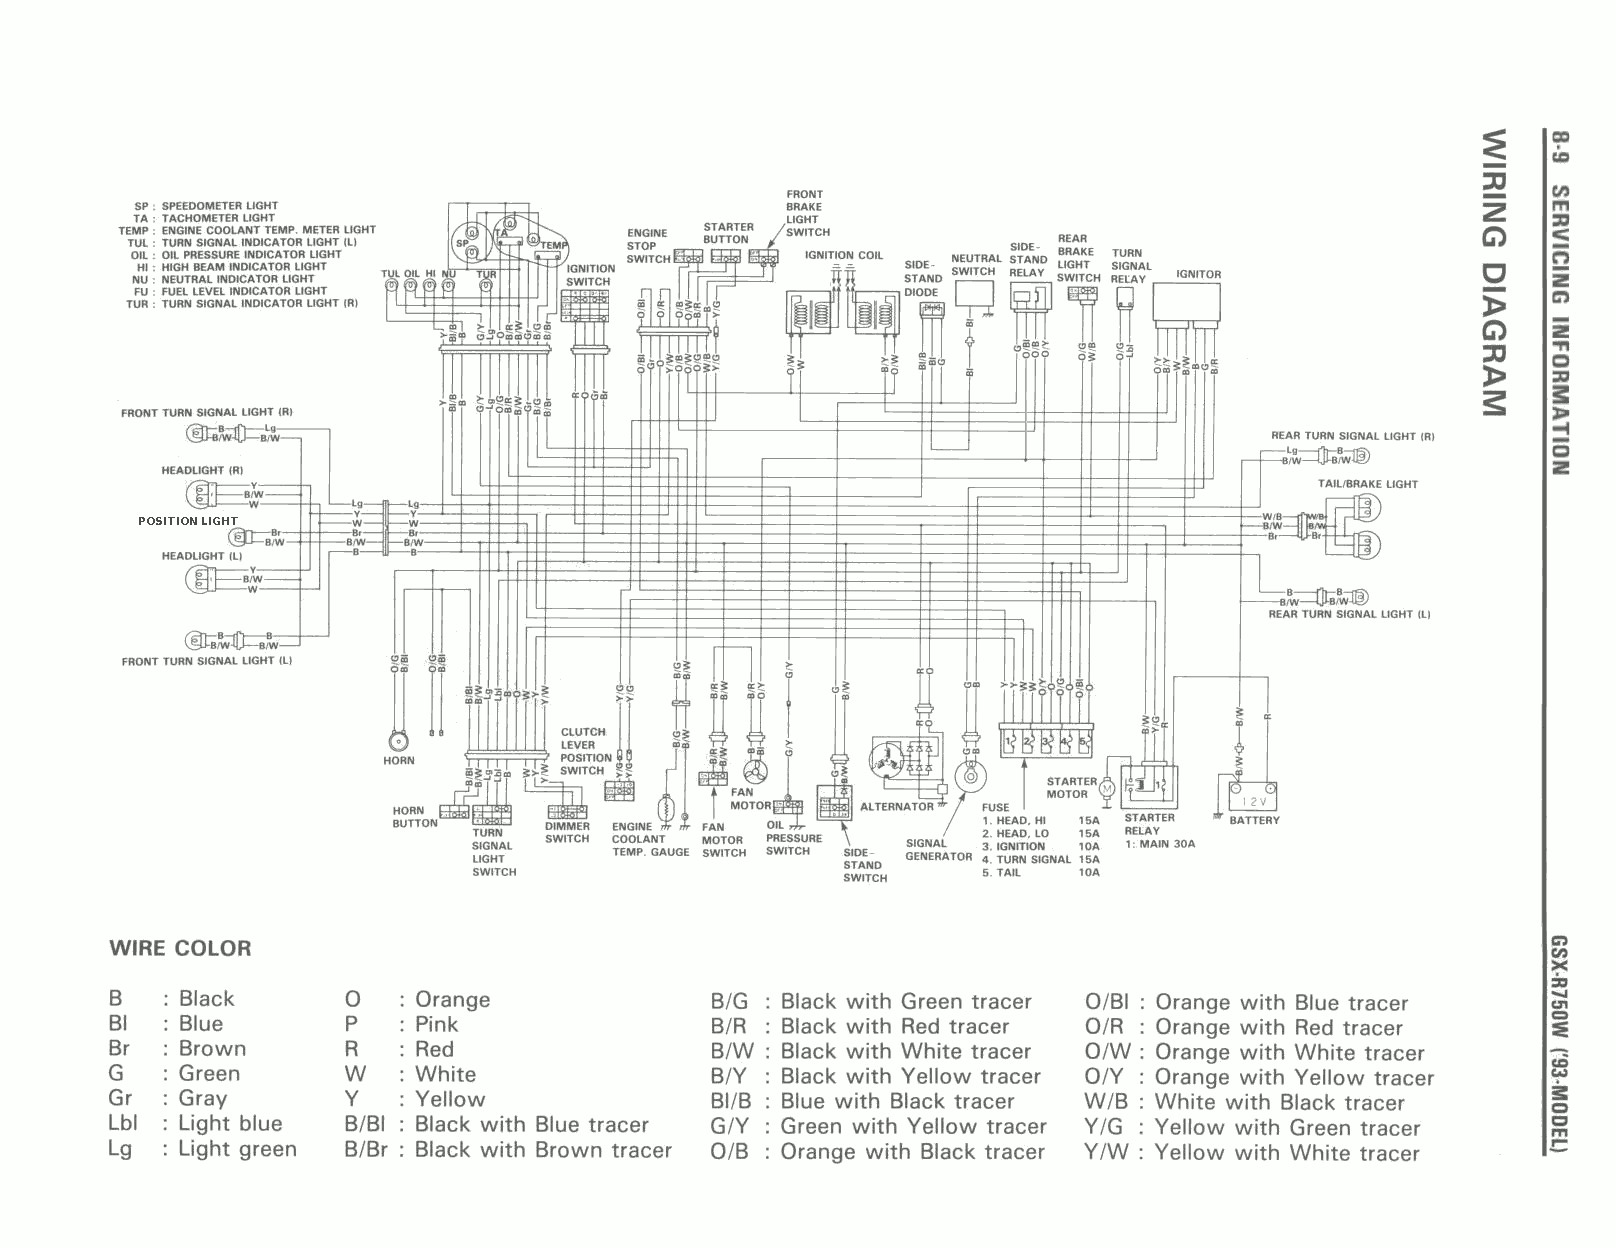 2001 Yamaha R6 Wiring Schematic Schematics Diagrams 2002 Stator Diagram Electrical Yzf Ignition Tail Light